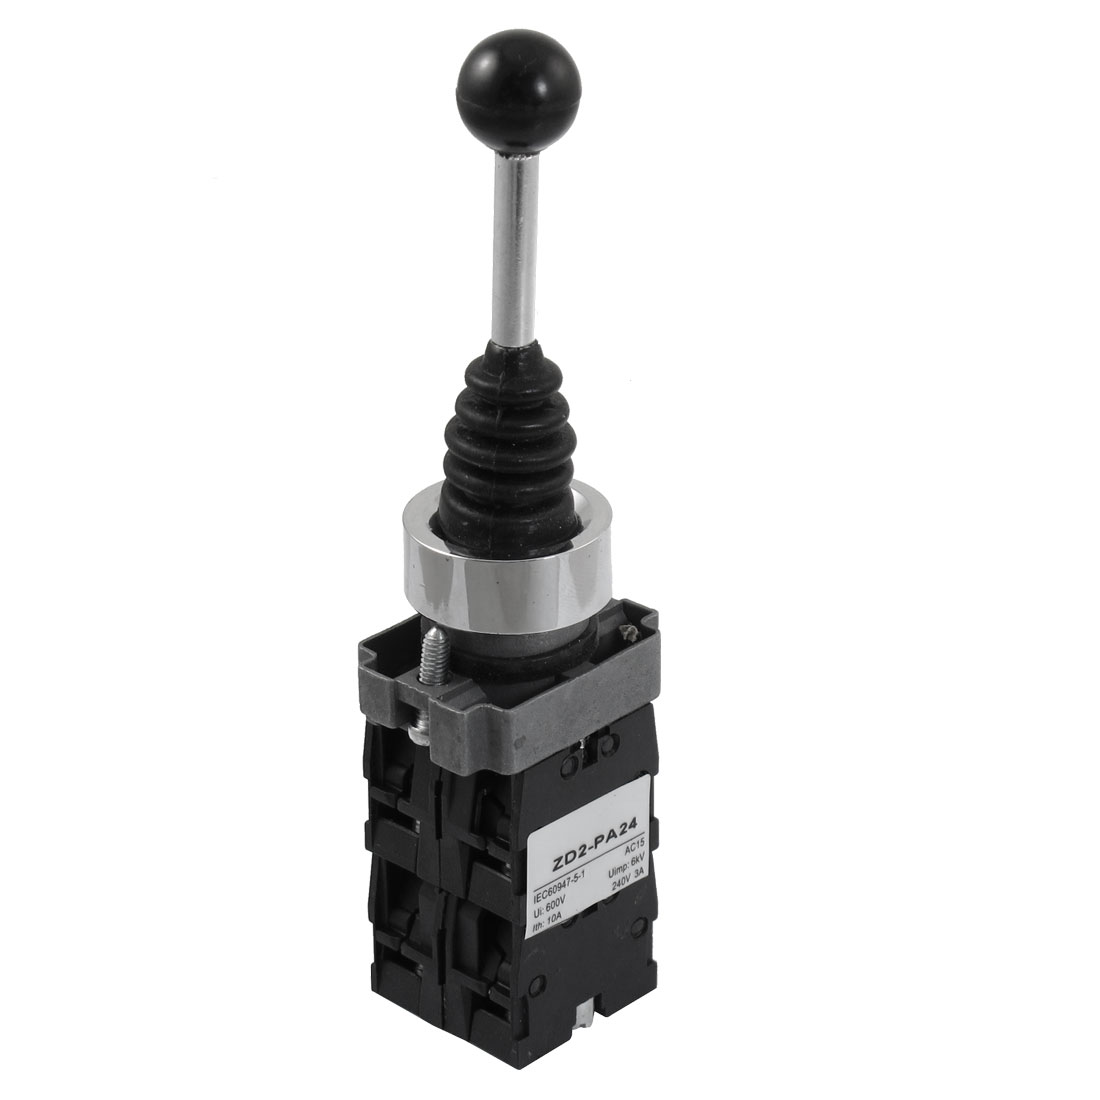 SPST 4 N.O. NO 4 Position Momentary Type Monolever Joystick Switch